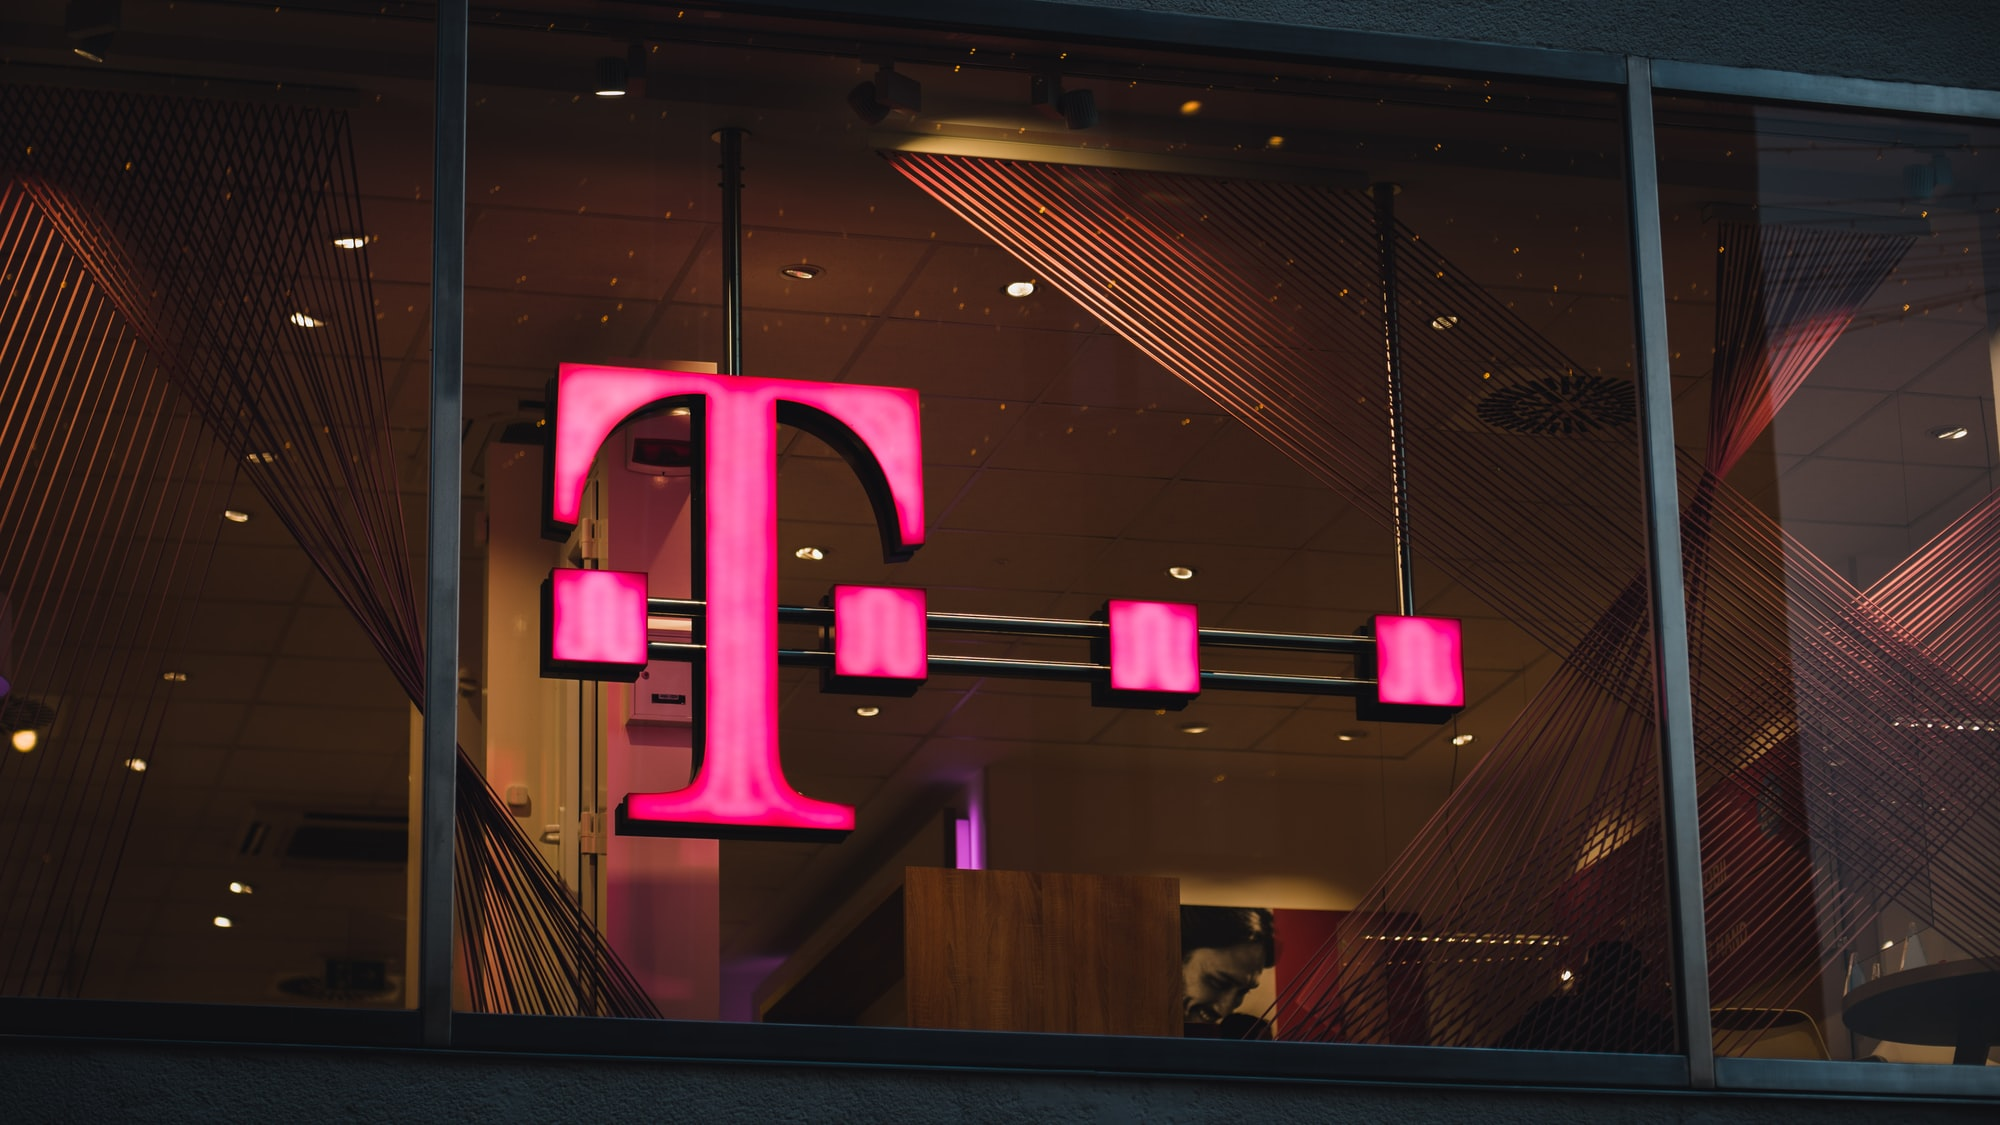 T-Mobile Internet Slow: What To Do Including Getting a VPN